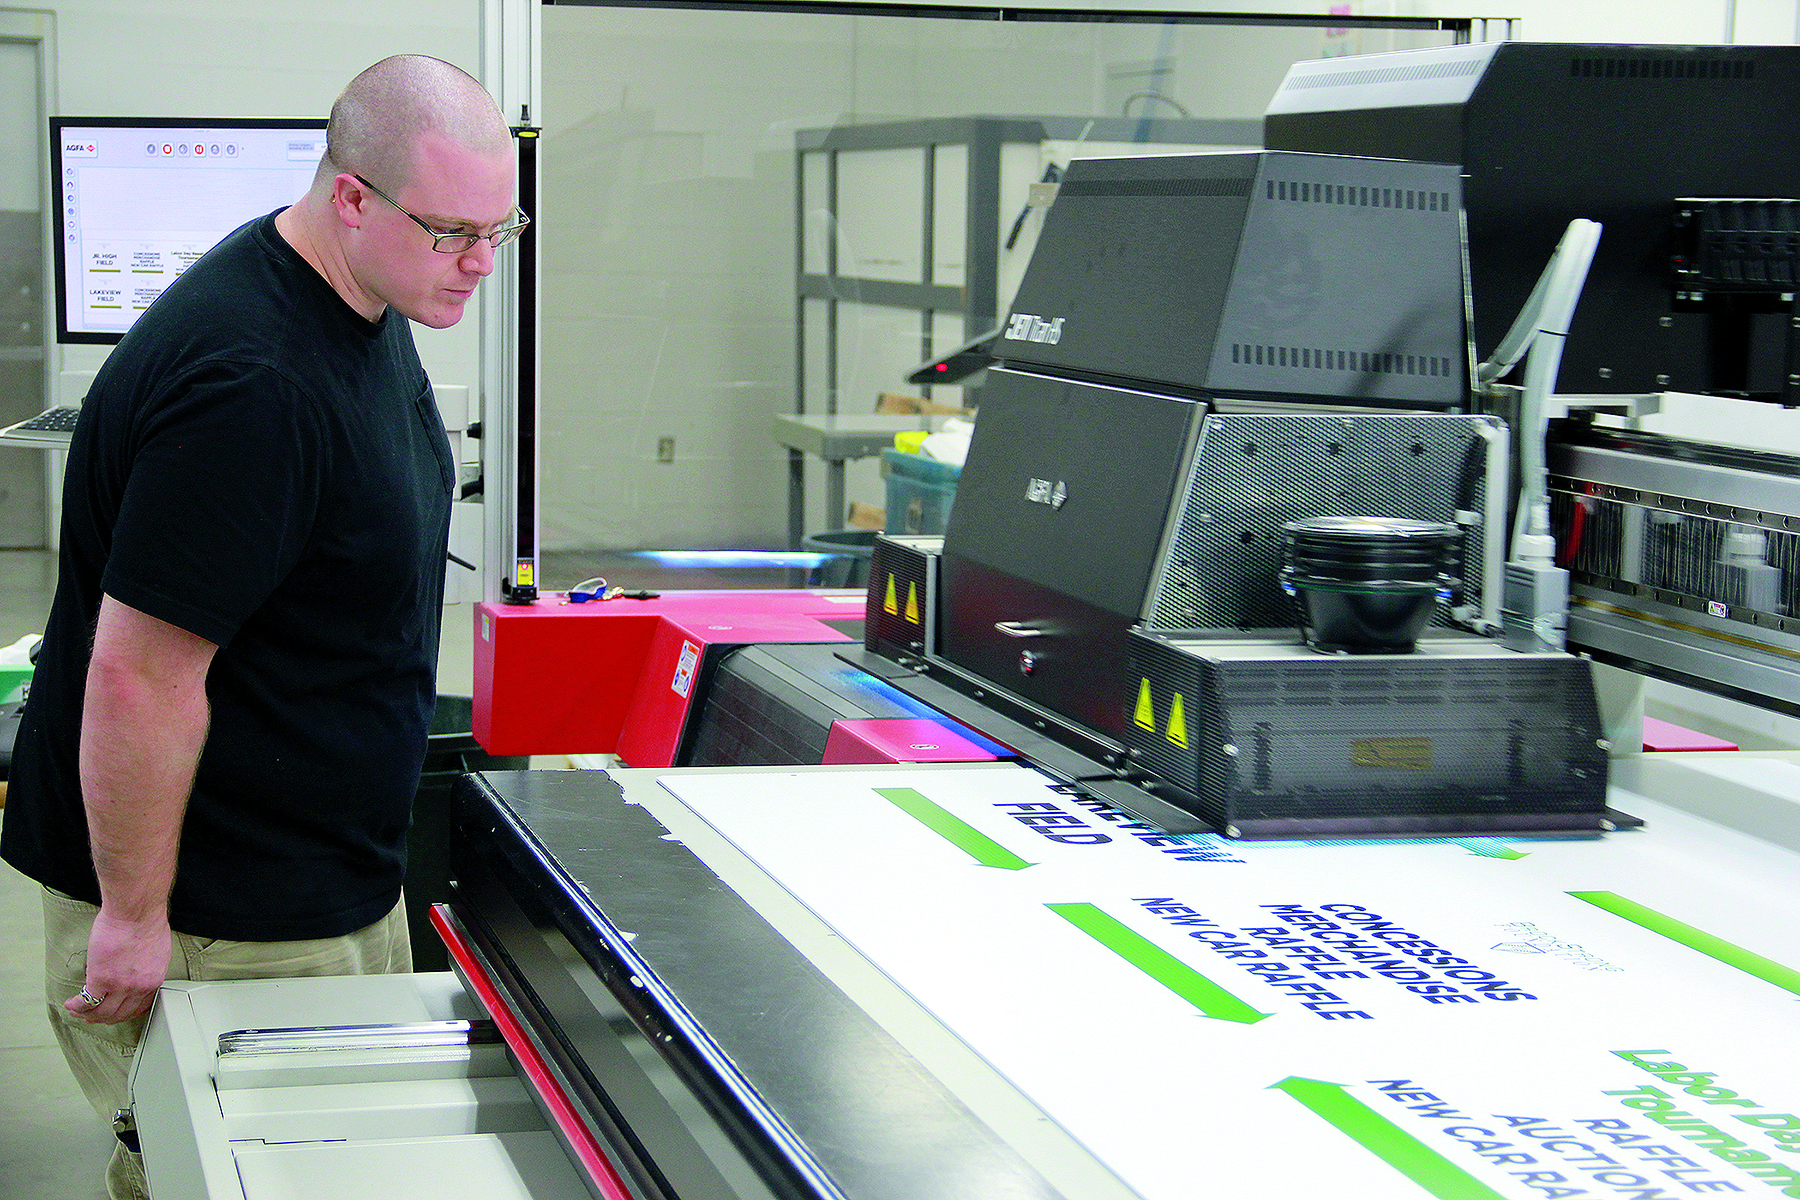 An Agfa Jeti Titan HS printer outputs point-of-purchase retail signage at Hopkins Printing.